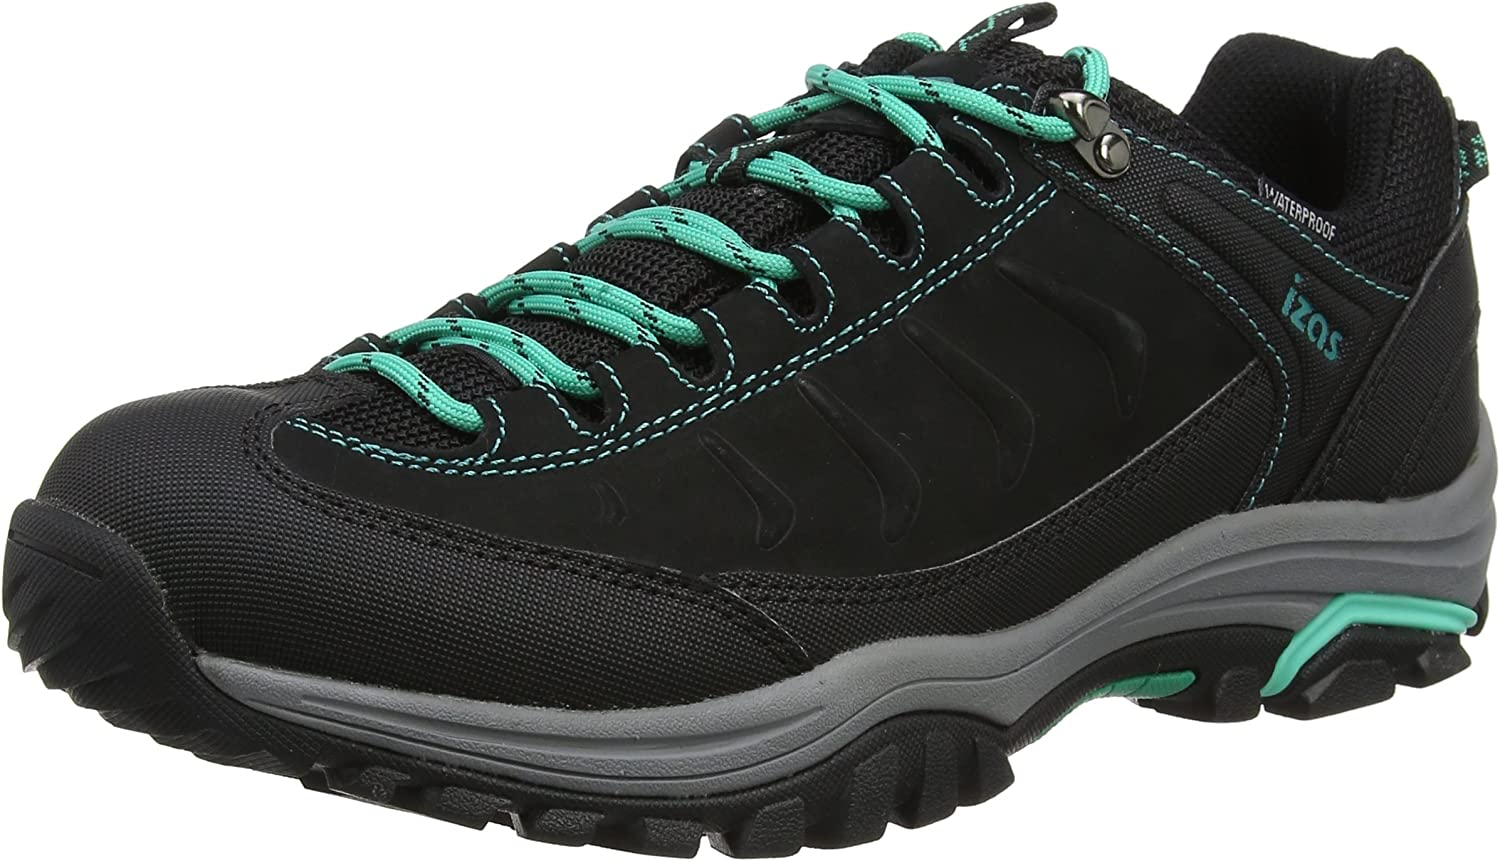 Izas Men's Shasta Outdoor Hiking shoes